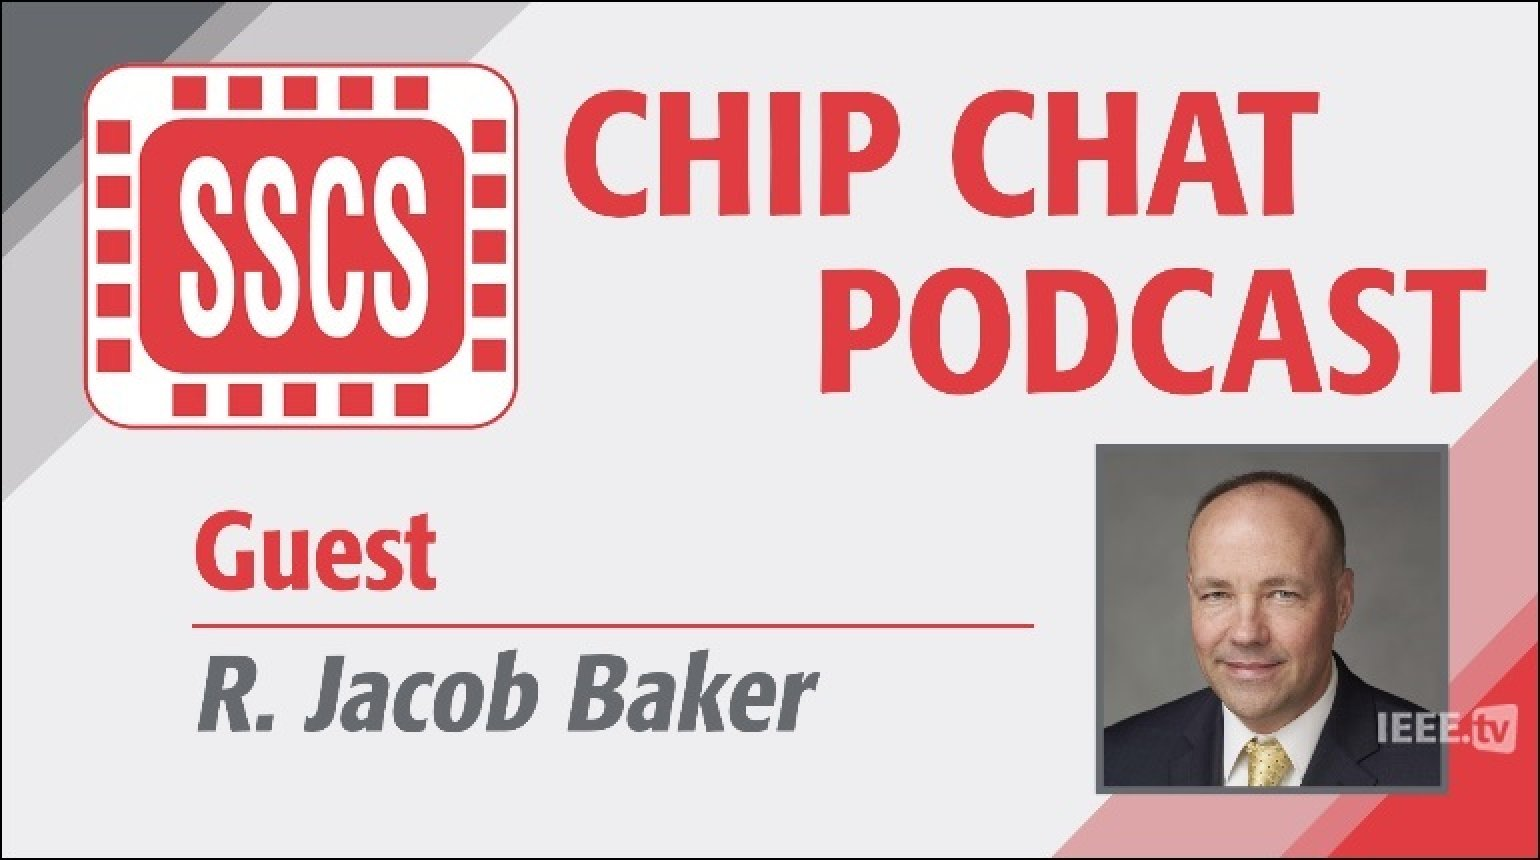 Episode 4 - R. Jacob Baker - Chip Chat Podcast